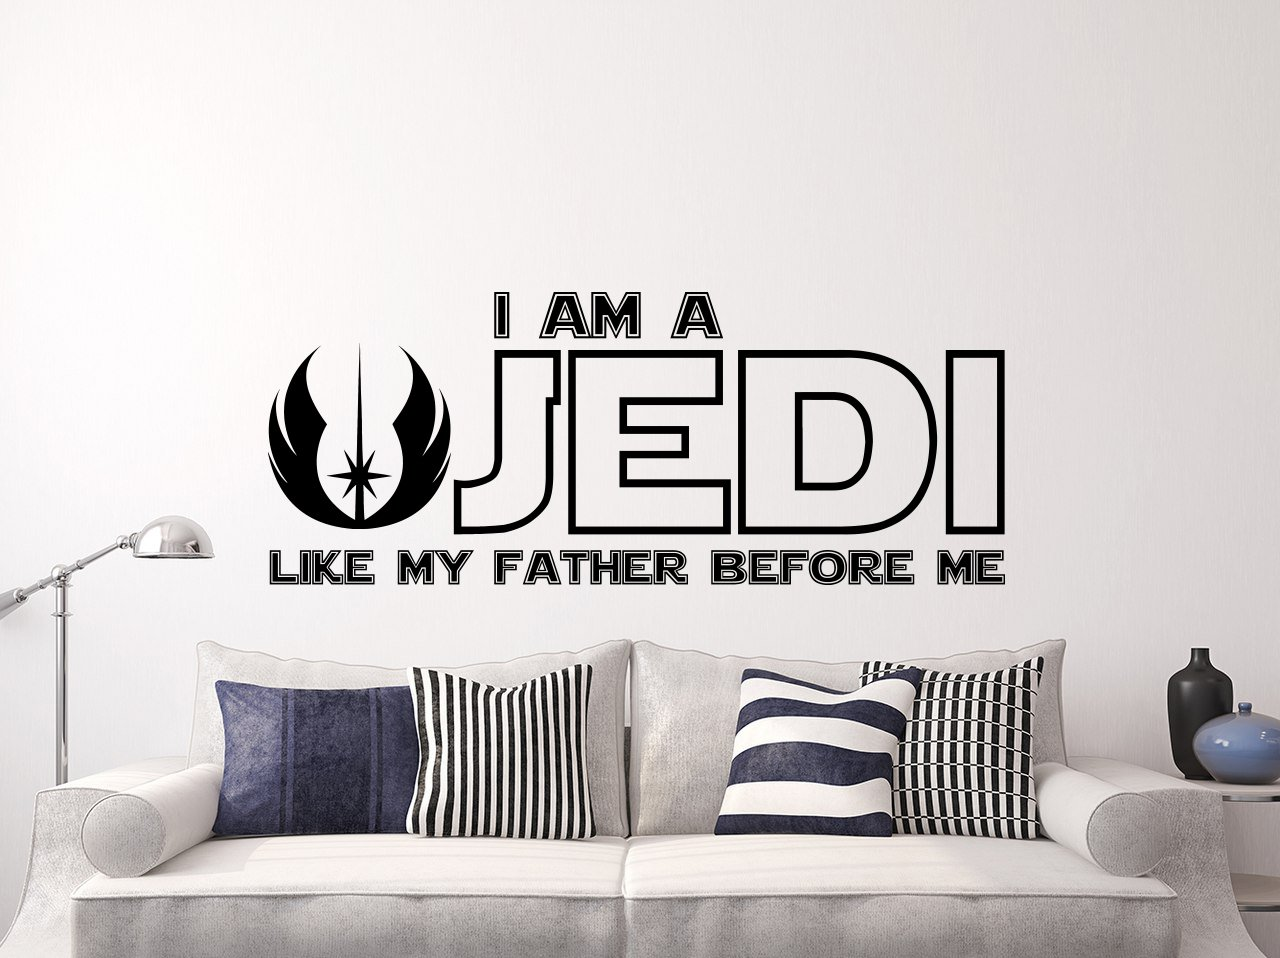 amazon com i am a jedi like my father before me wall decal vinyl amazon com i am a jedi like my father before me wall decal vinyl sticker decals quotes star wars wall decal quote wall decor nursery baby room art x3